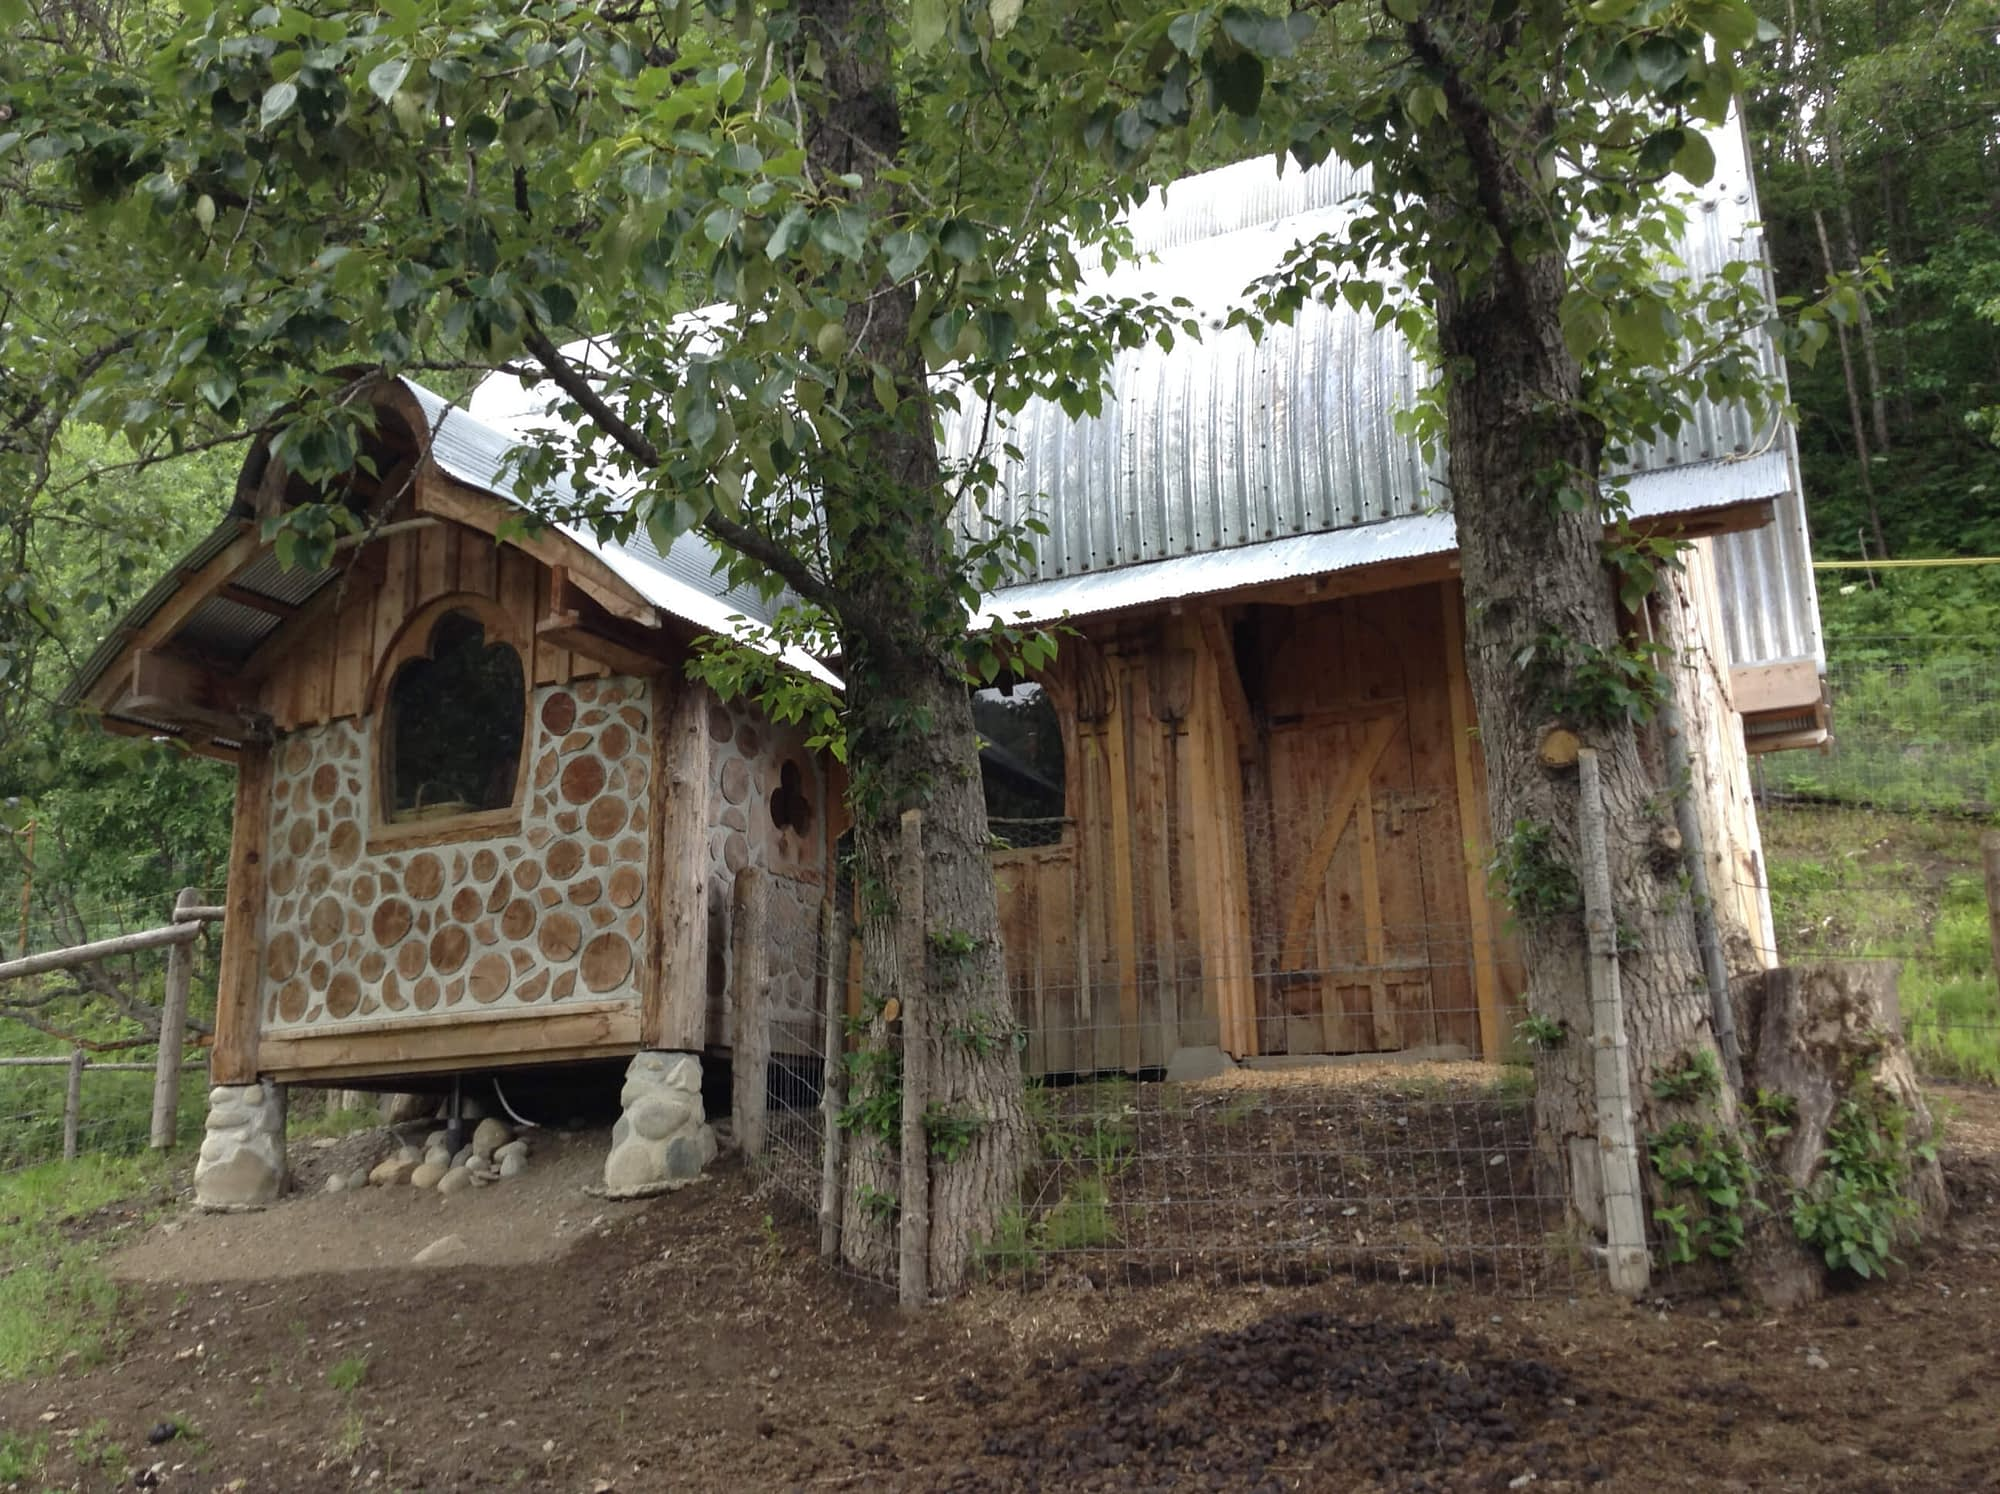 Cordwood tack room in donkey barn at Dean Family Farm and Art Studios.